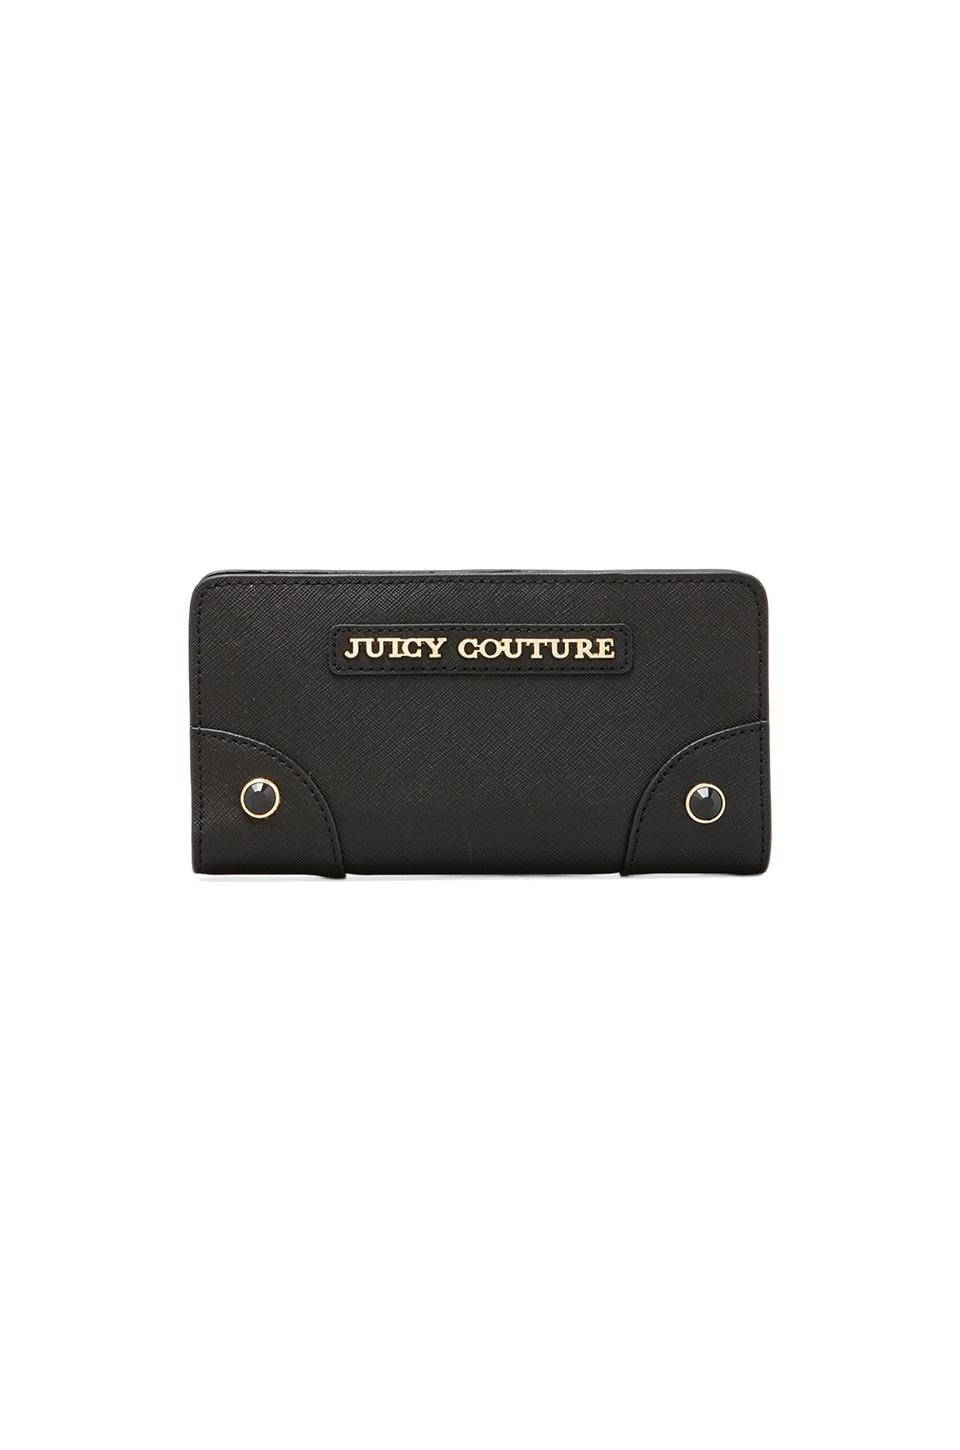 Juicy Couture Continental Zip Wallet in Black